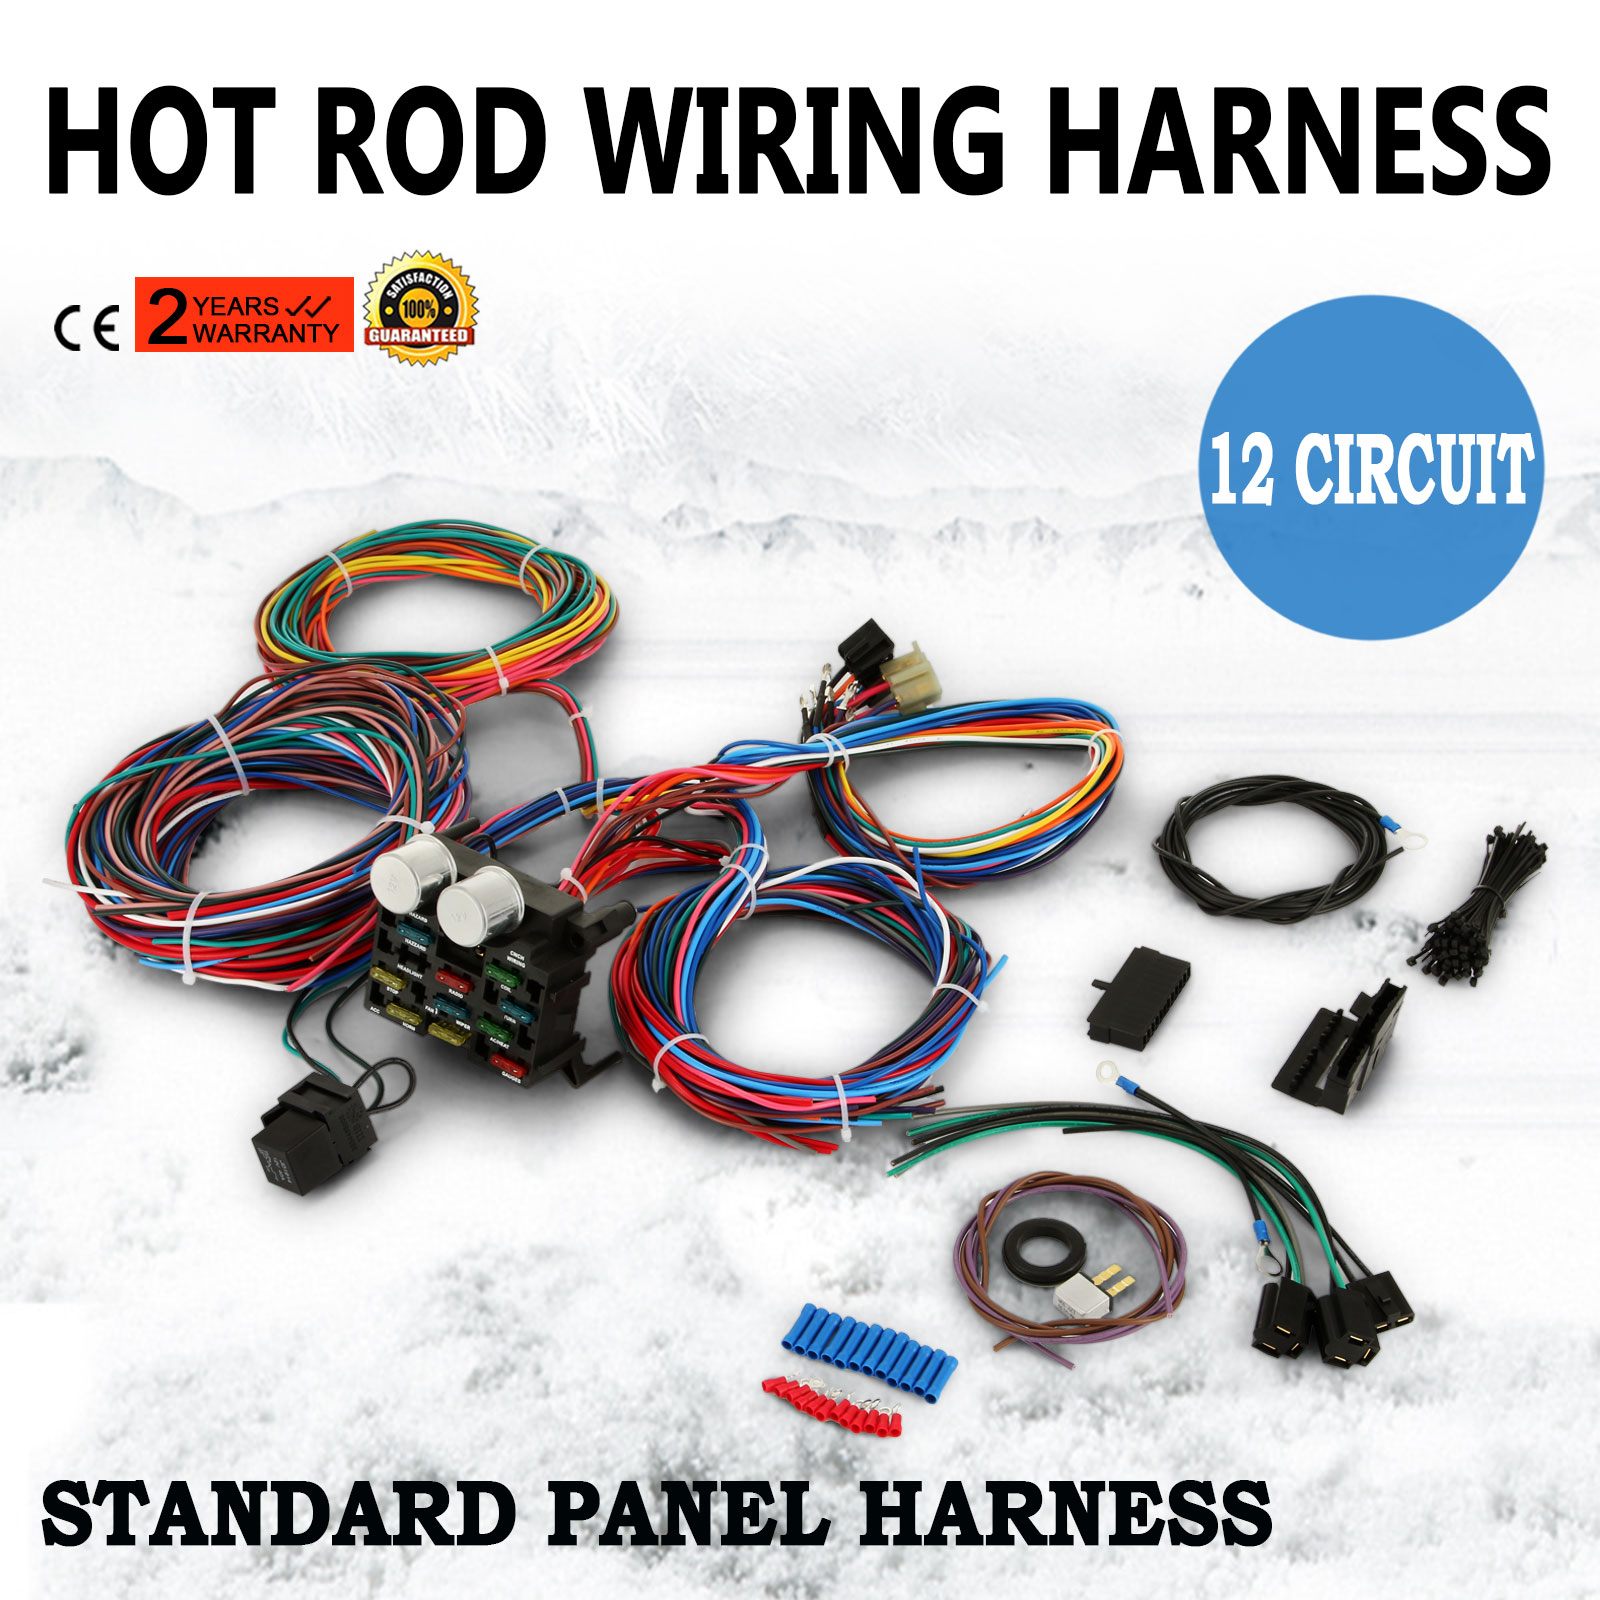 Vintage Car Truck Parts Accessories Ebay Motors Muscle Wiring Harness Ce 12 Circuit Standard Panel Hot Rod Street Up